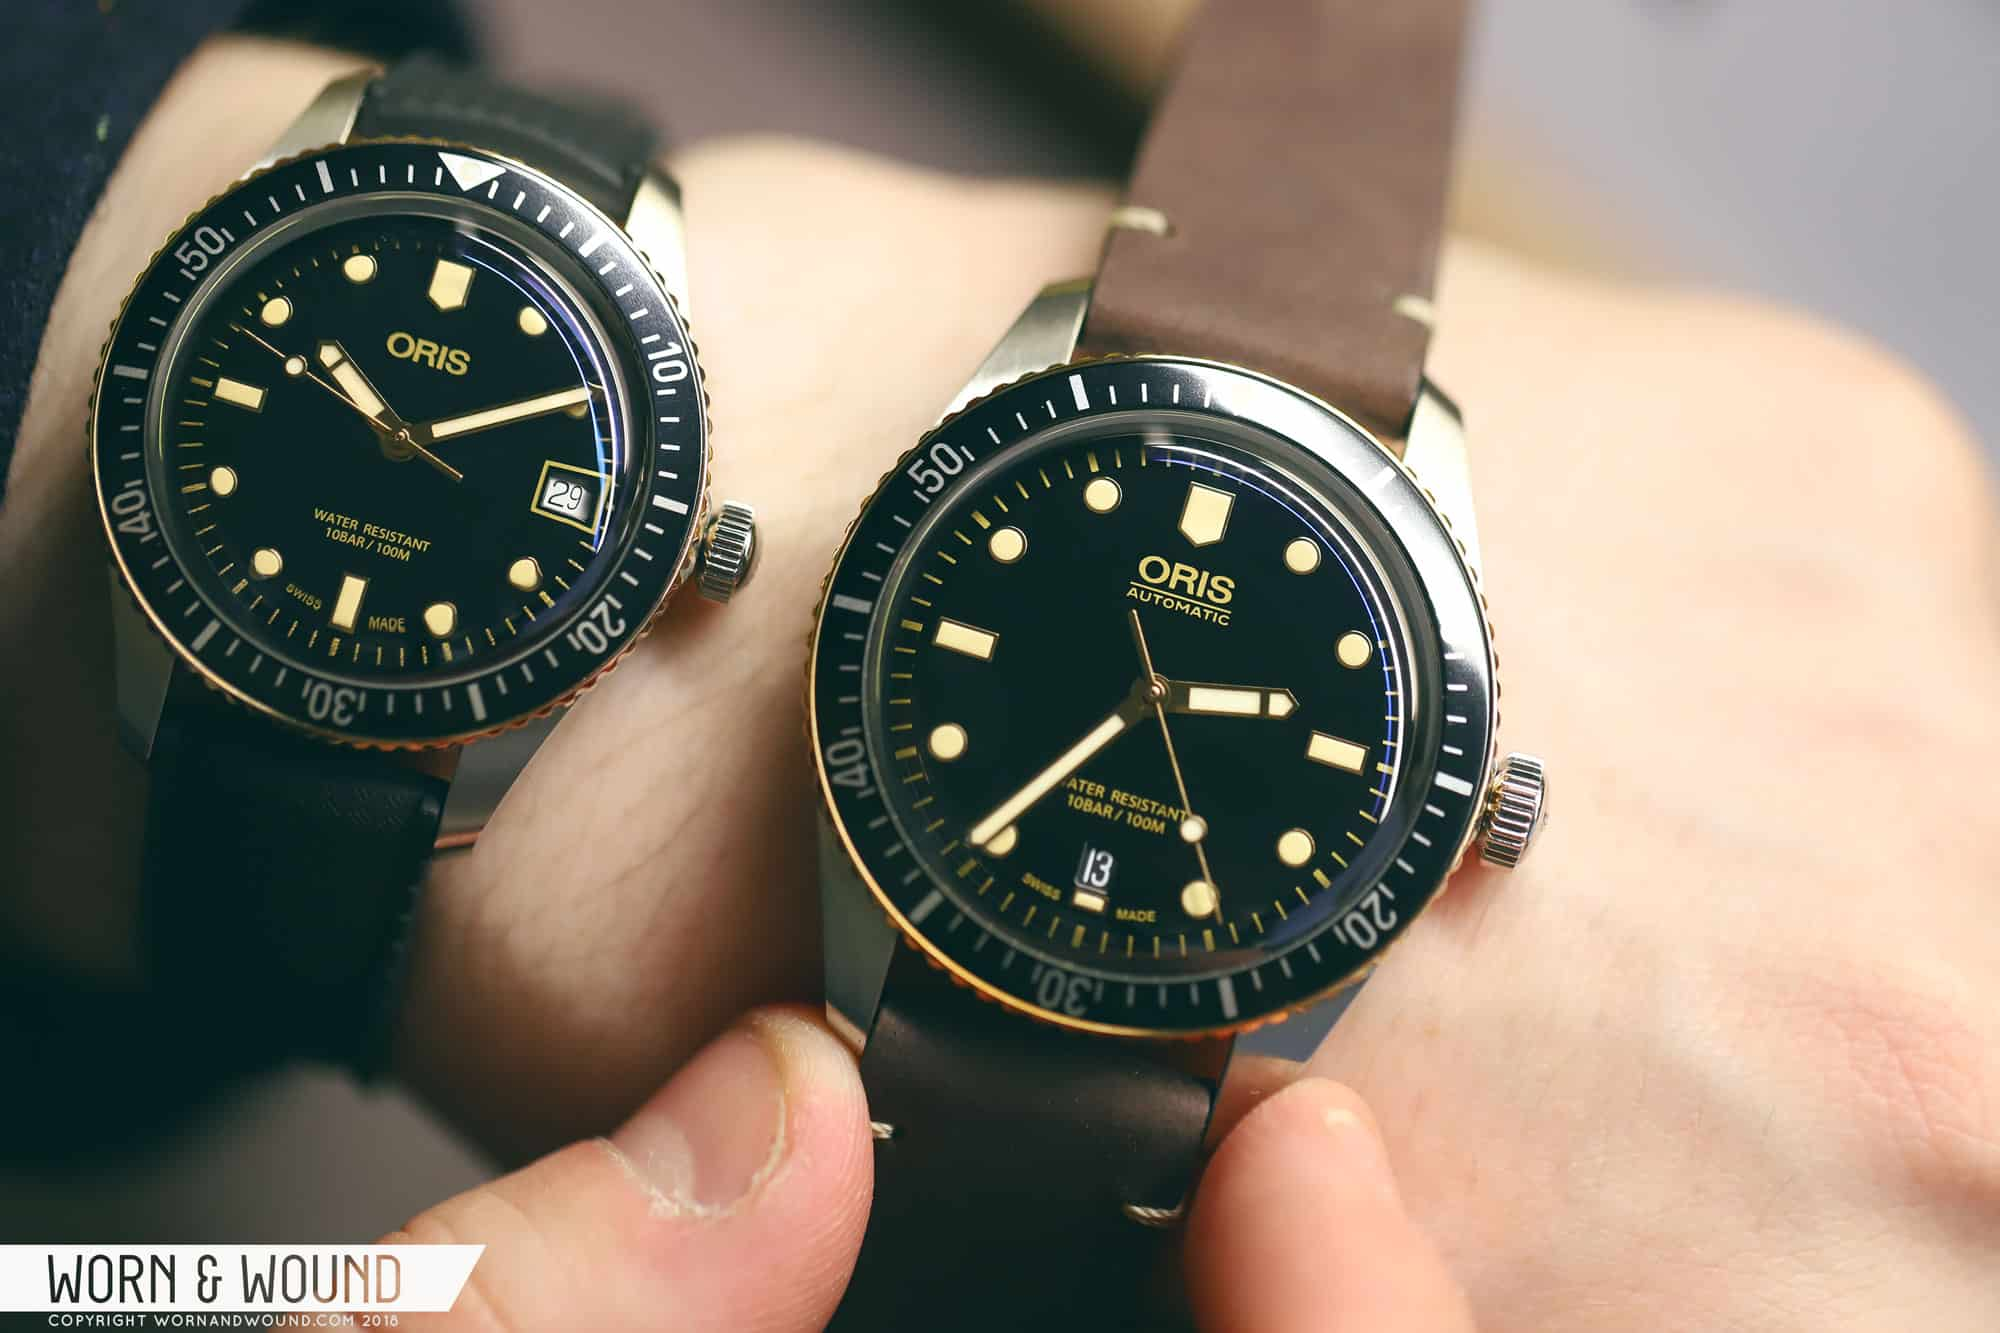 Baselworld 2018: Introducing the Oris Divers Sixty-Five Bronze Bezel in 36 and 40mm